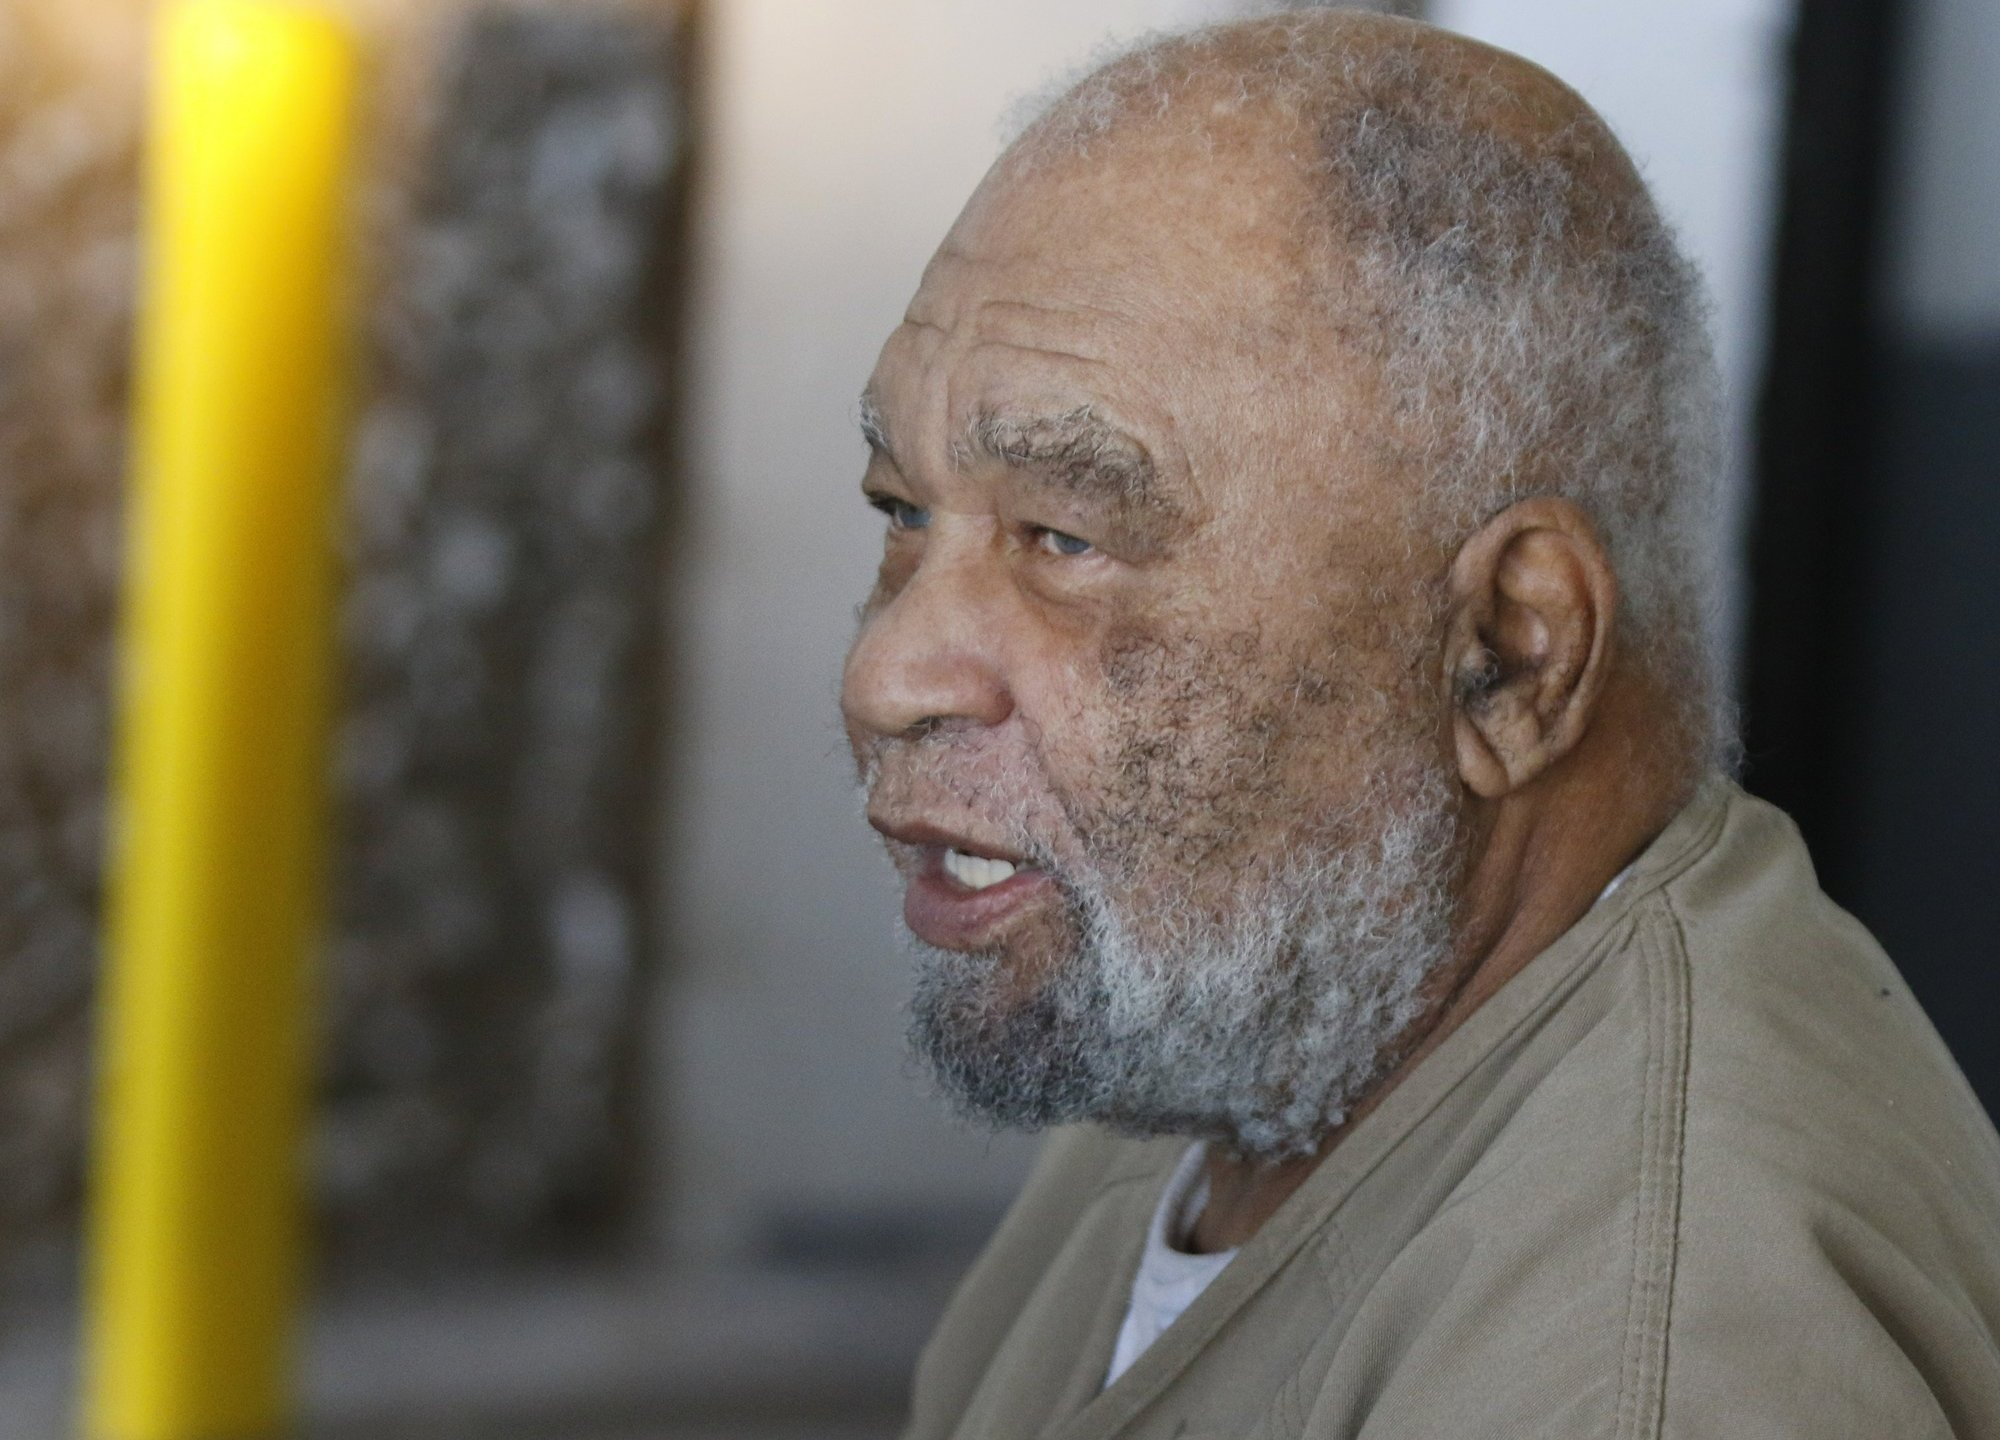 79-year-old California inmate linked to more than 60